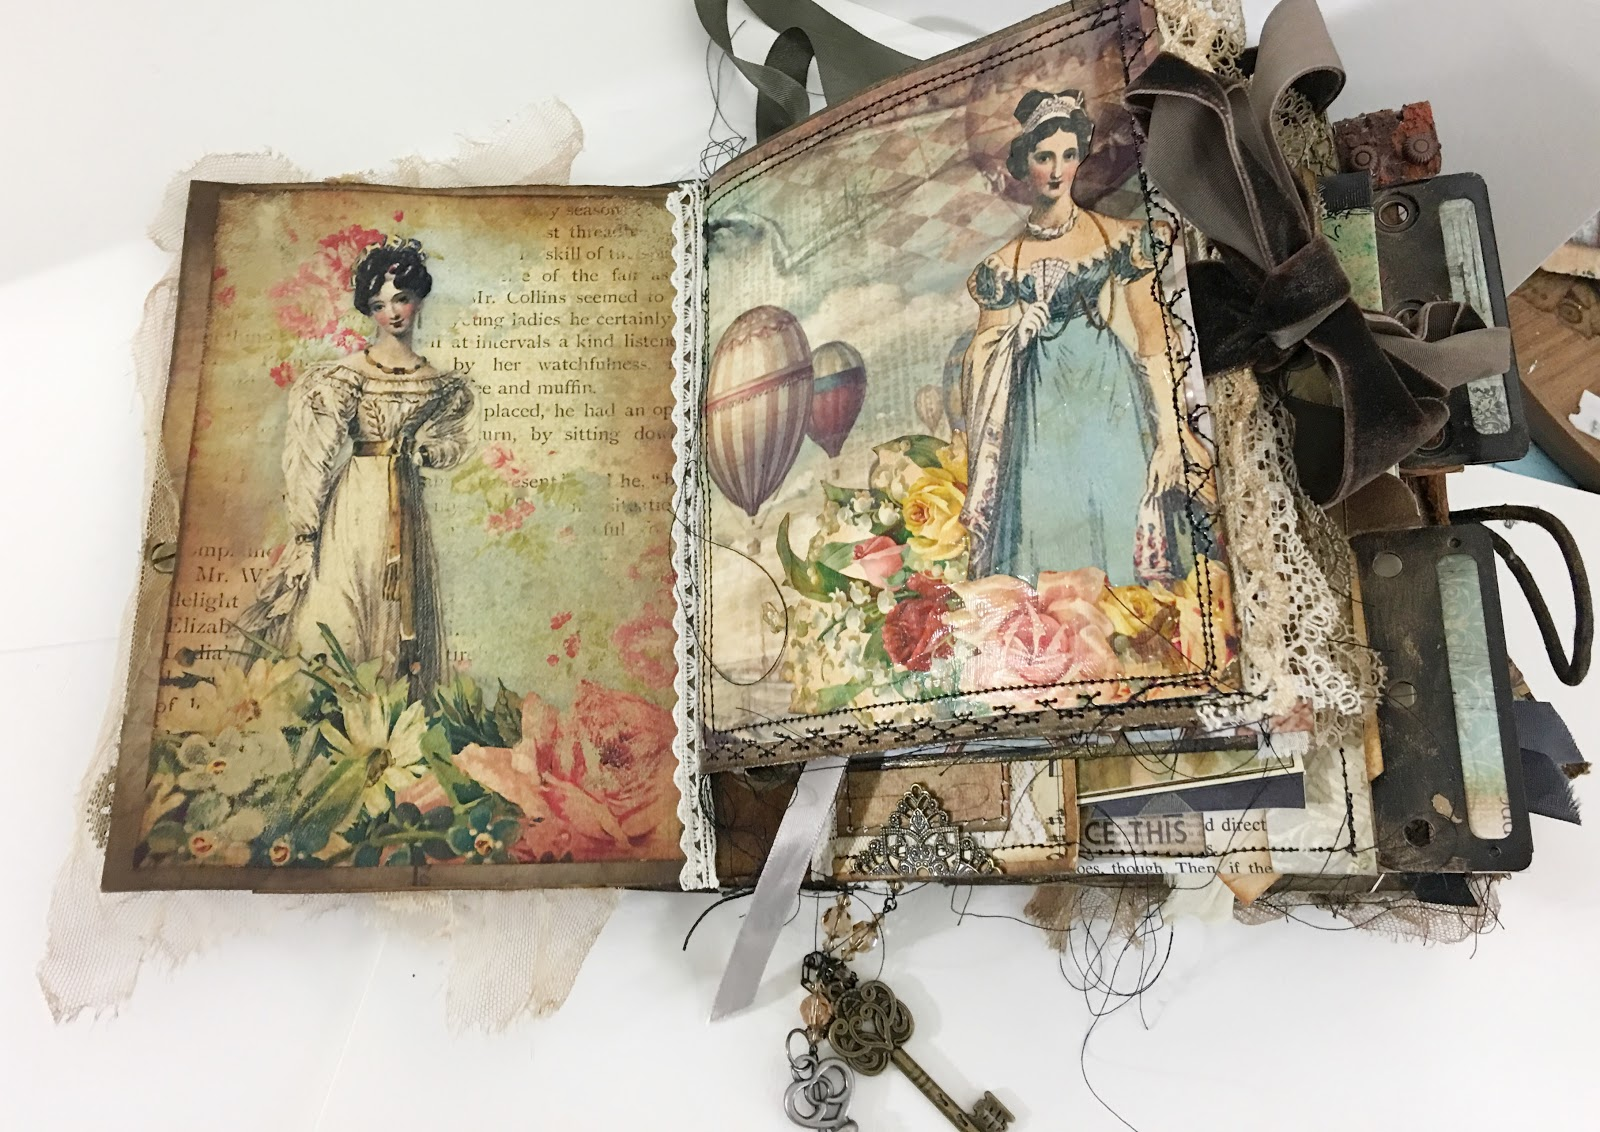 handmade, handmade book, Jane Austen, junk journal, junk journal junkies, Mask, steampunk, steampunk crafts, steampunk mask, steampunk youtube,